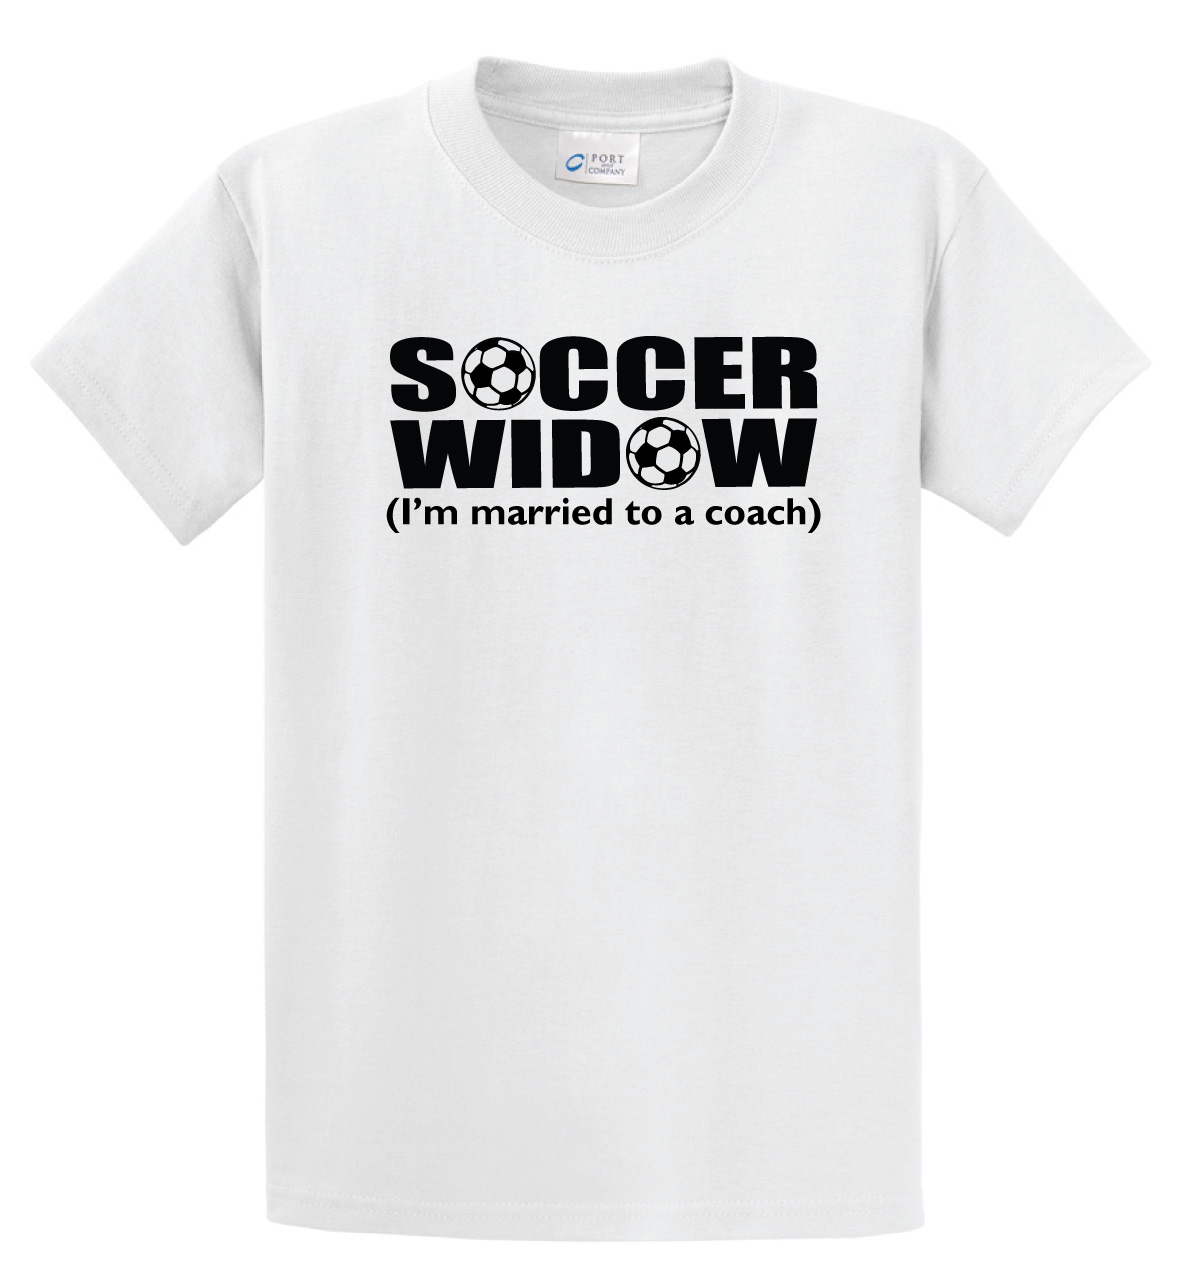 Soccer Widow Tshirt in white by Code Four Athletics